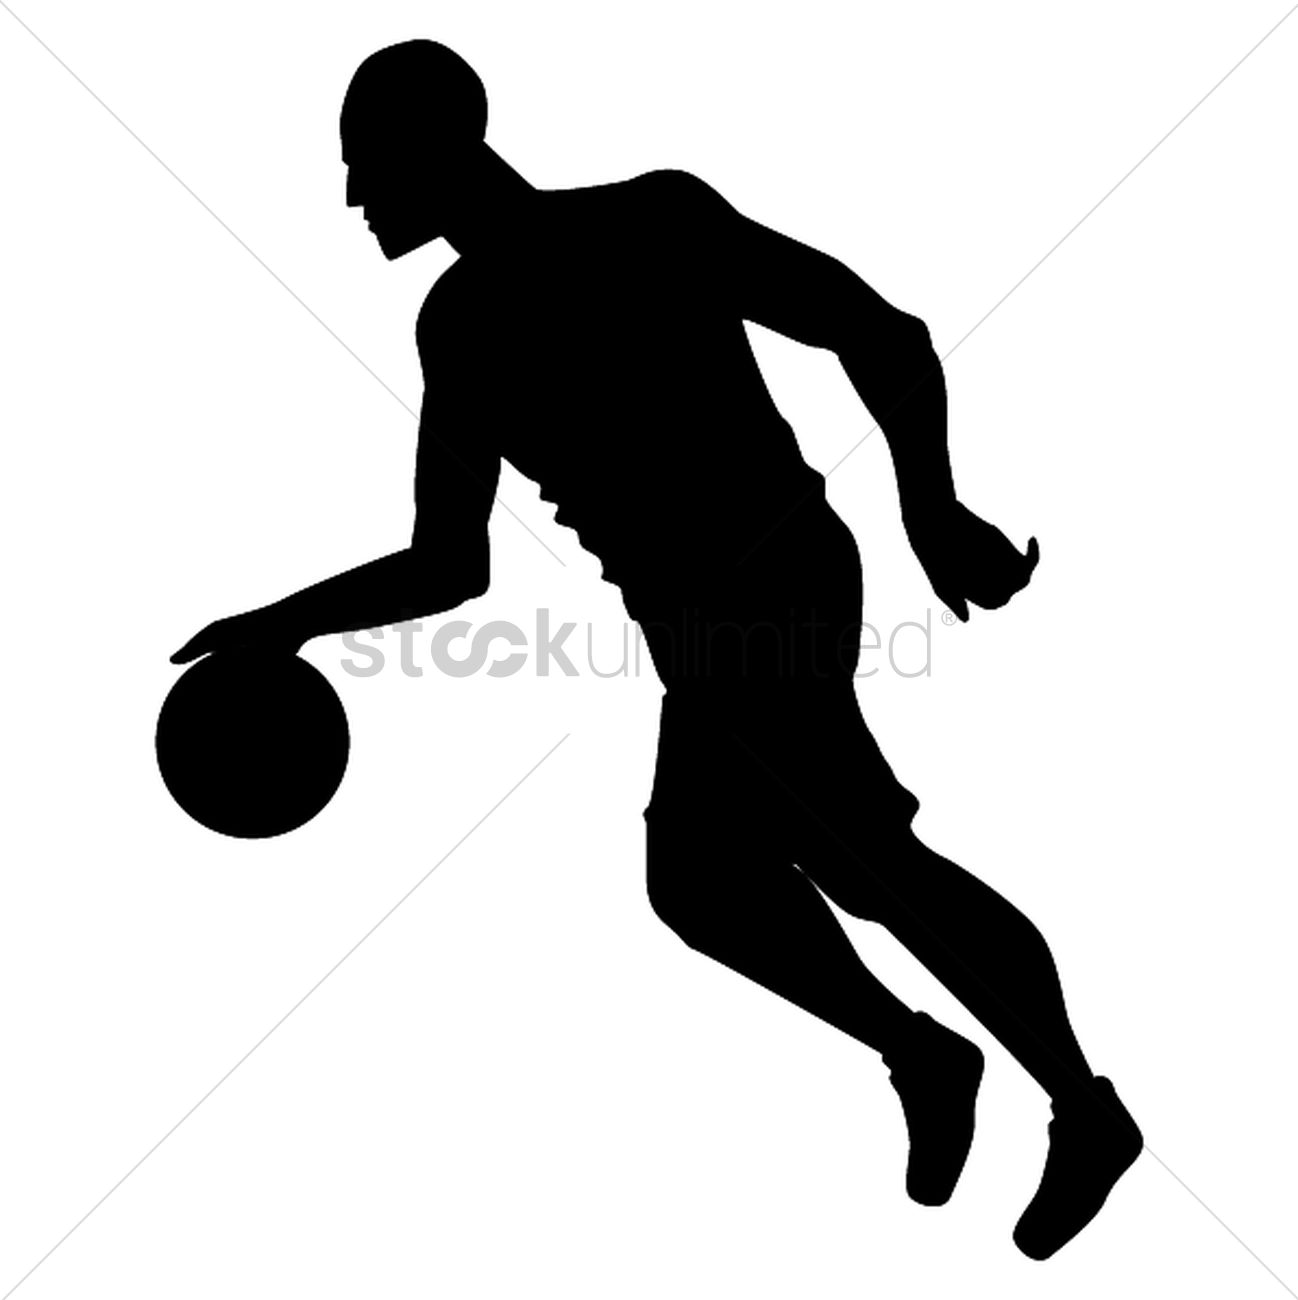 1298x1300 Silhouette Of Basketball Player Vector Image